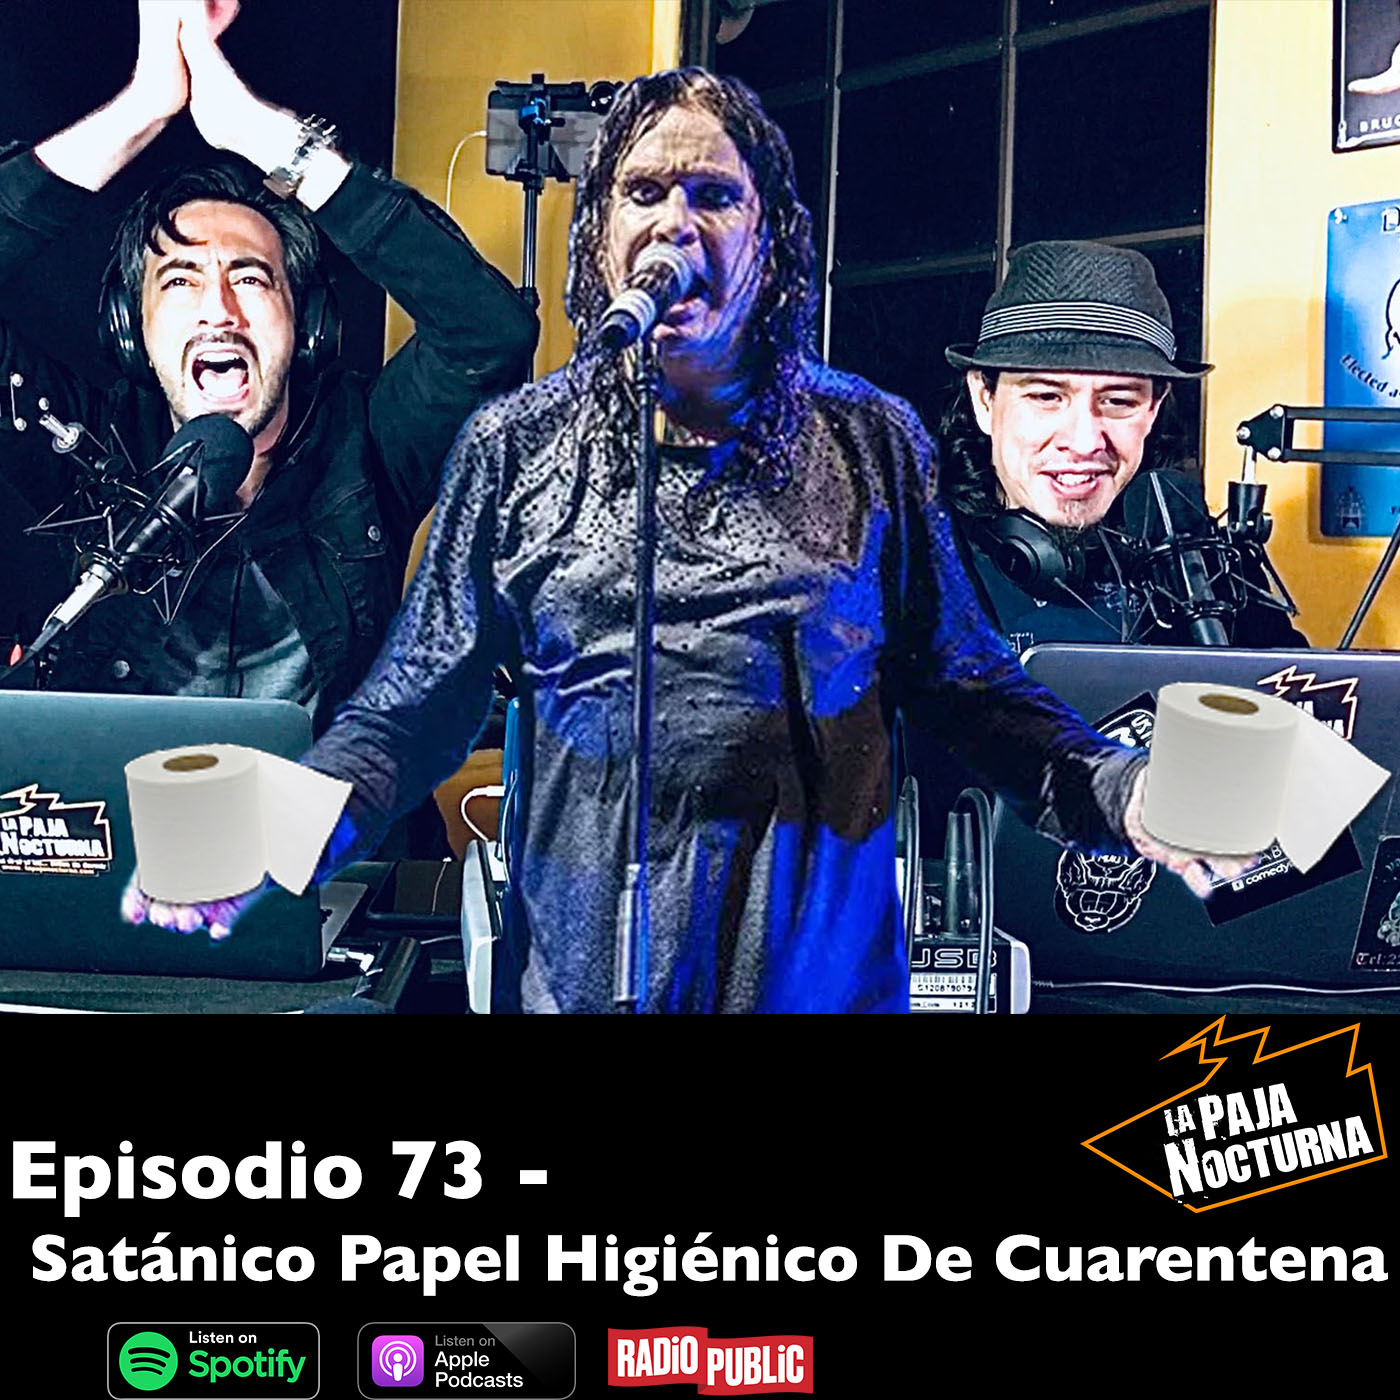 La paja nocturna podcast Episodio 73